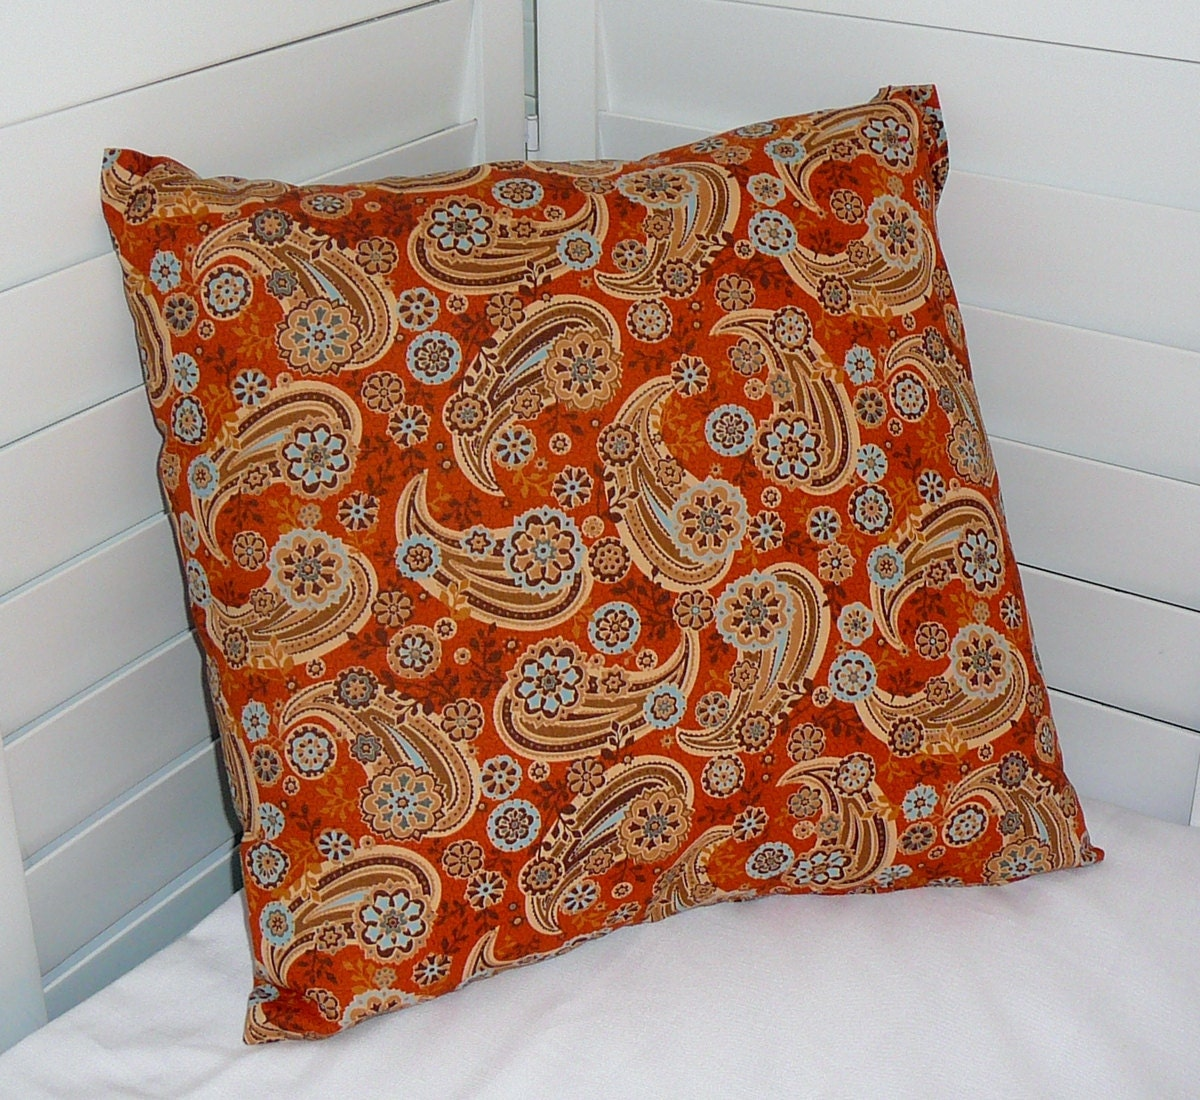 Throw Pillow Cover Fabric : Pillow Covers 18 x 18 Throw Pillow Covers